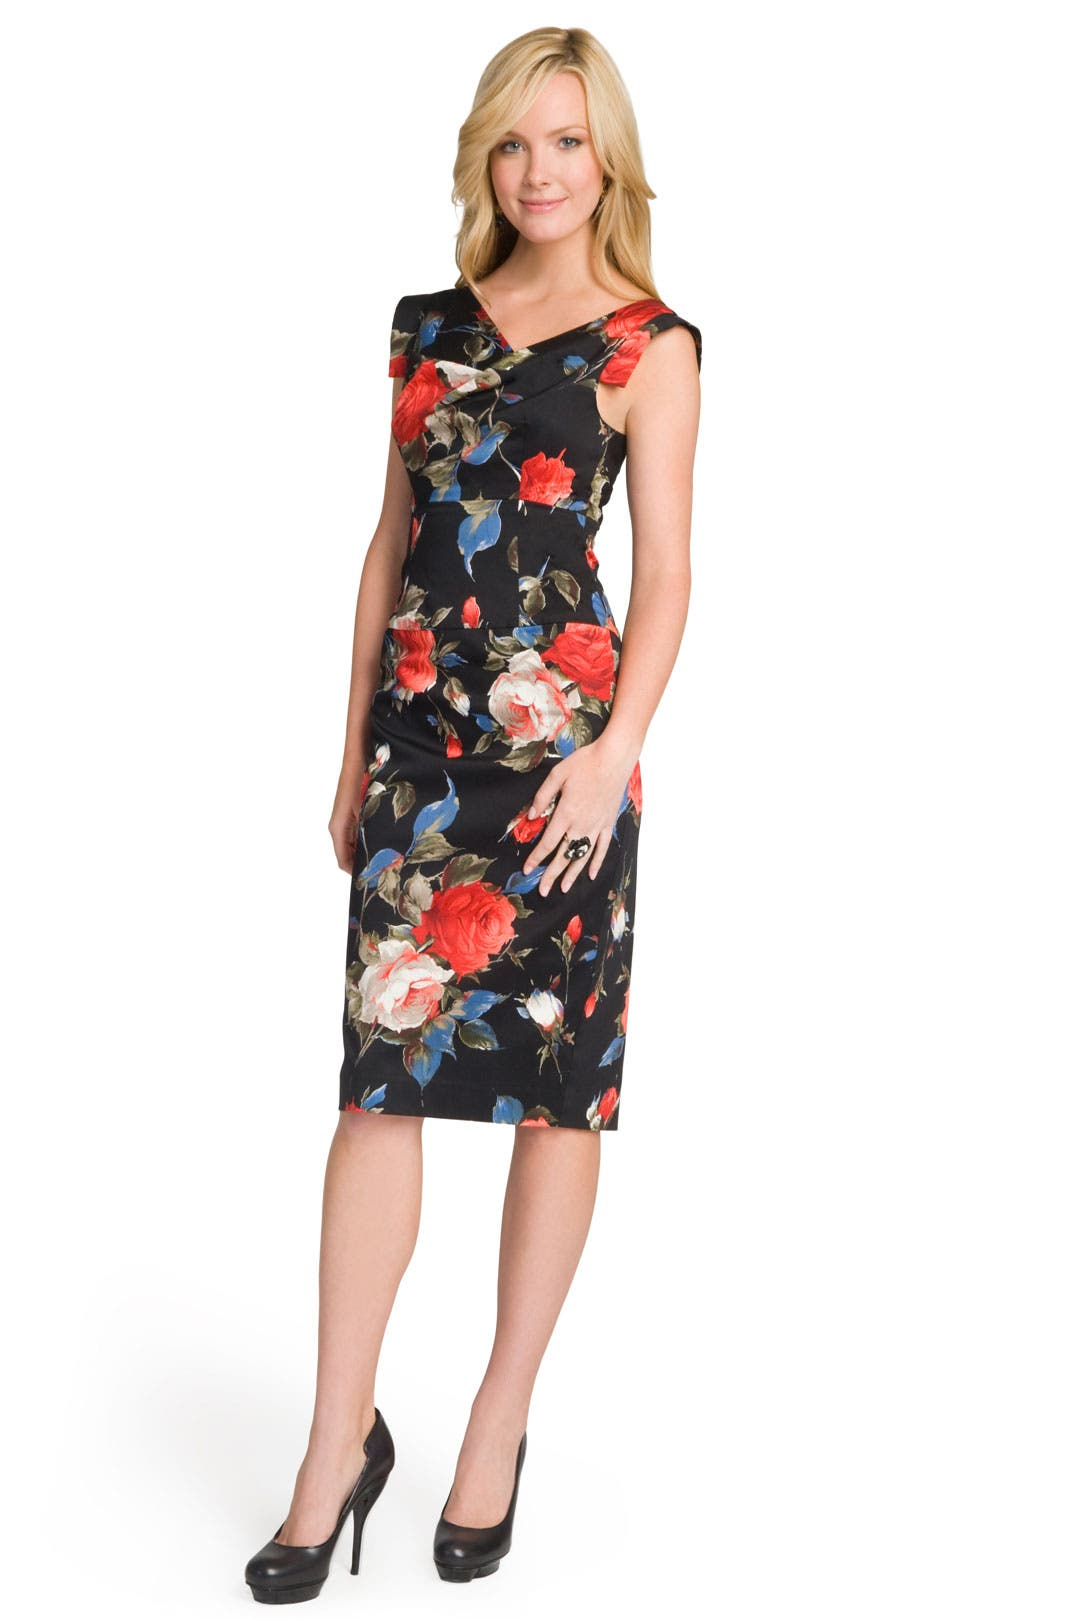 Ready Rose Dress by Black Halo